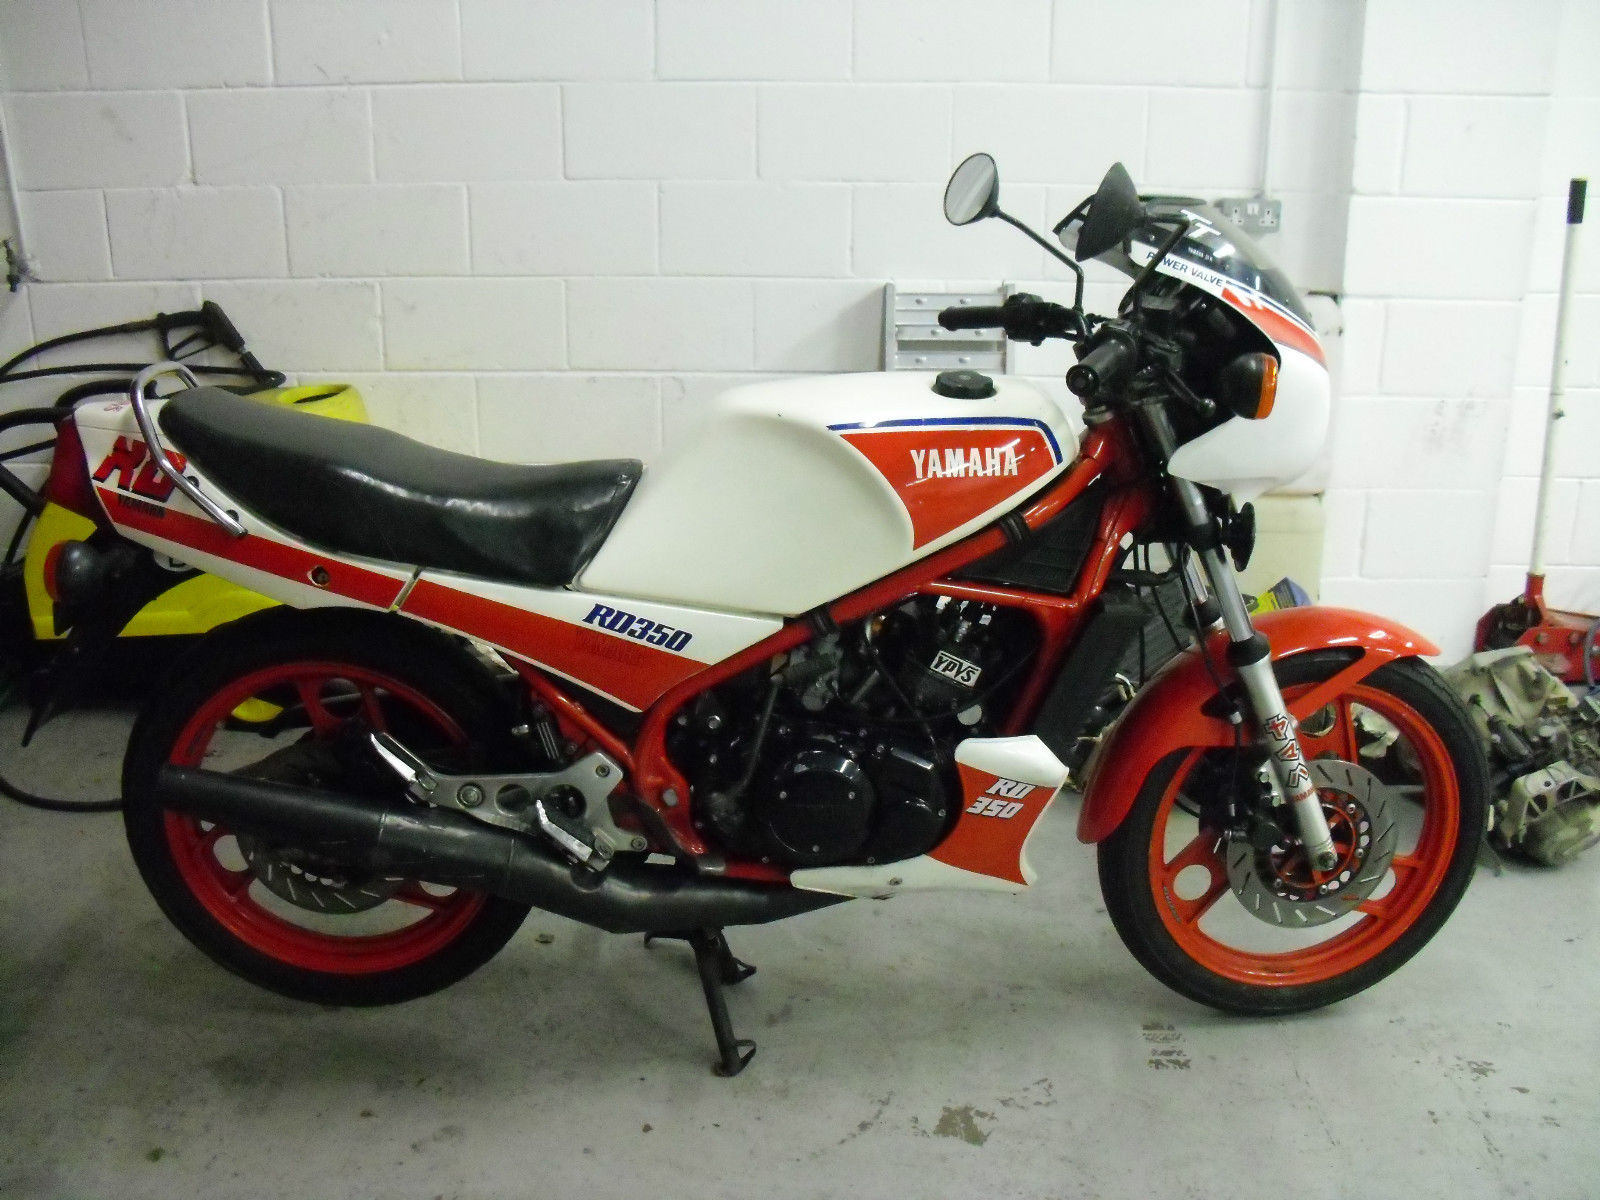 yamaha rd350 lc ypvs 31k 1983 mk1 ideal restoration. Black Bedroom Furniture Sets. Home Design Ideas